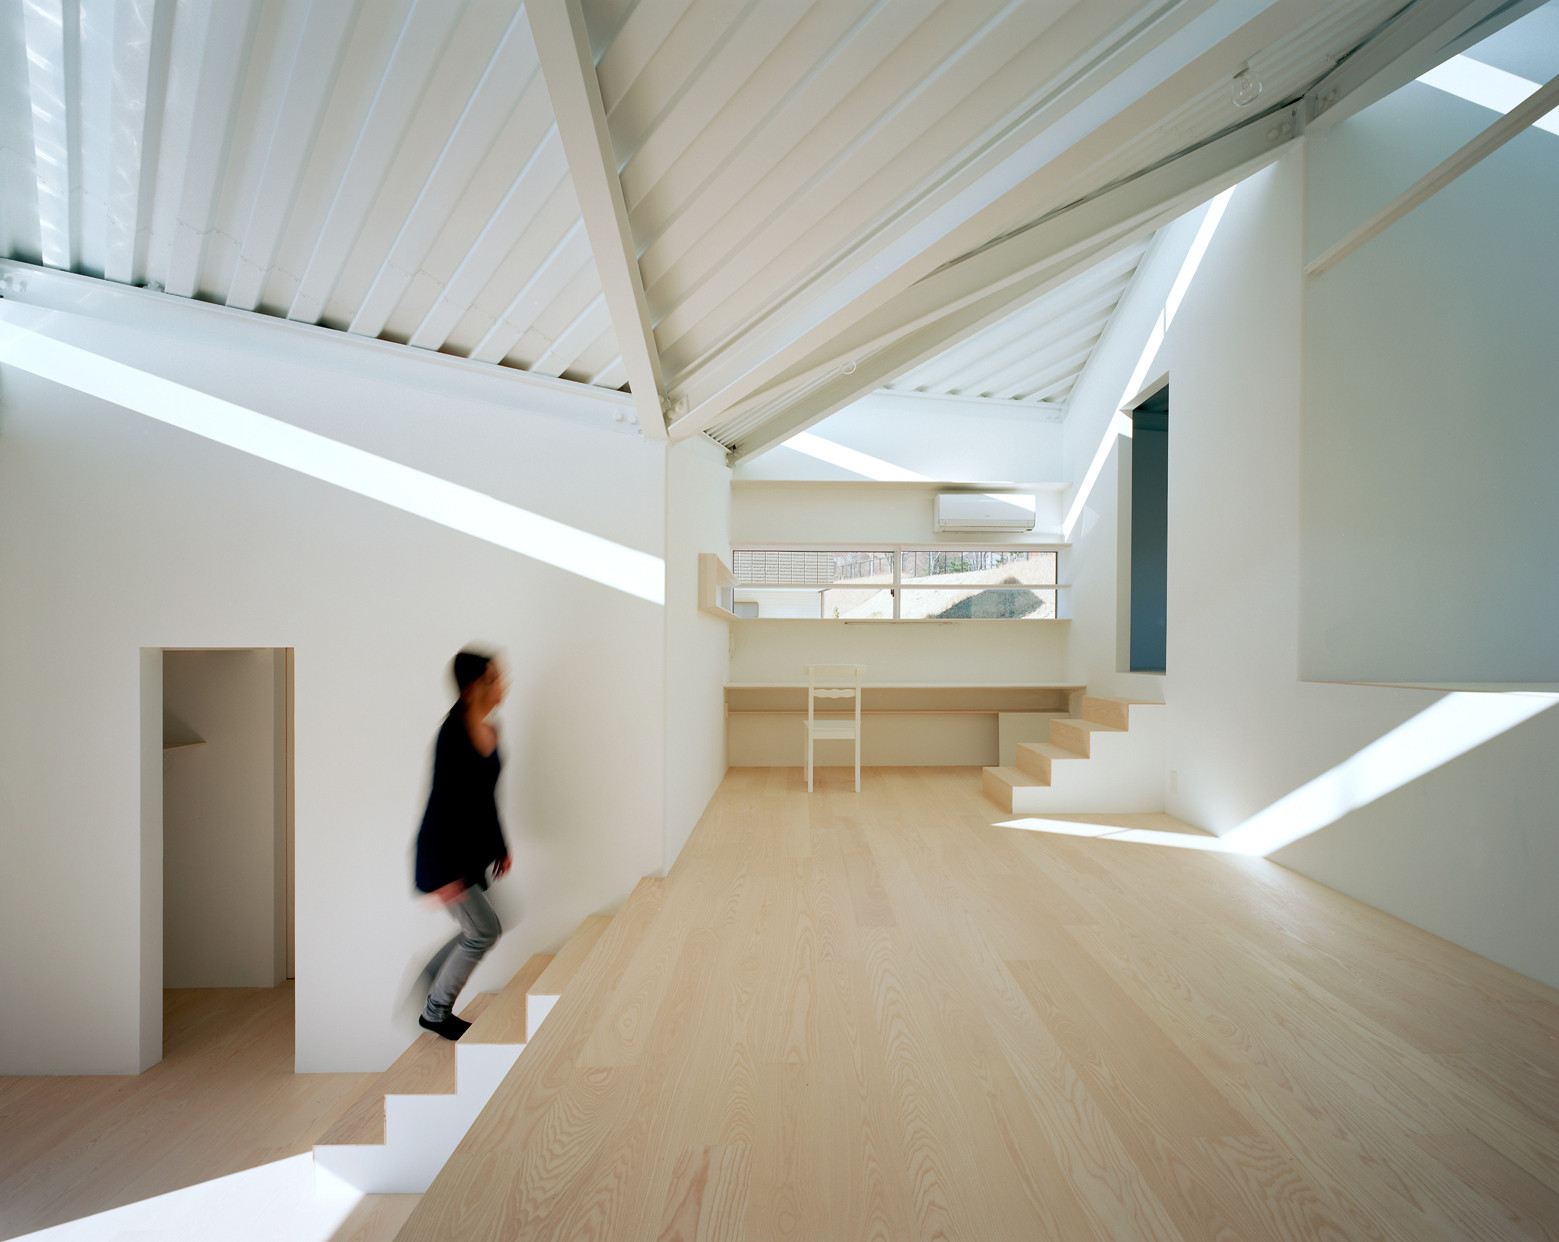 Roof on the hill alphaville architects archdaily for Definition of form and space in architecture